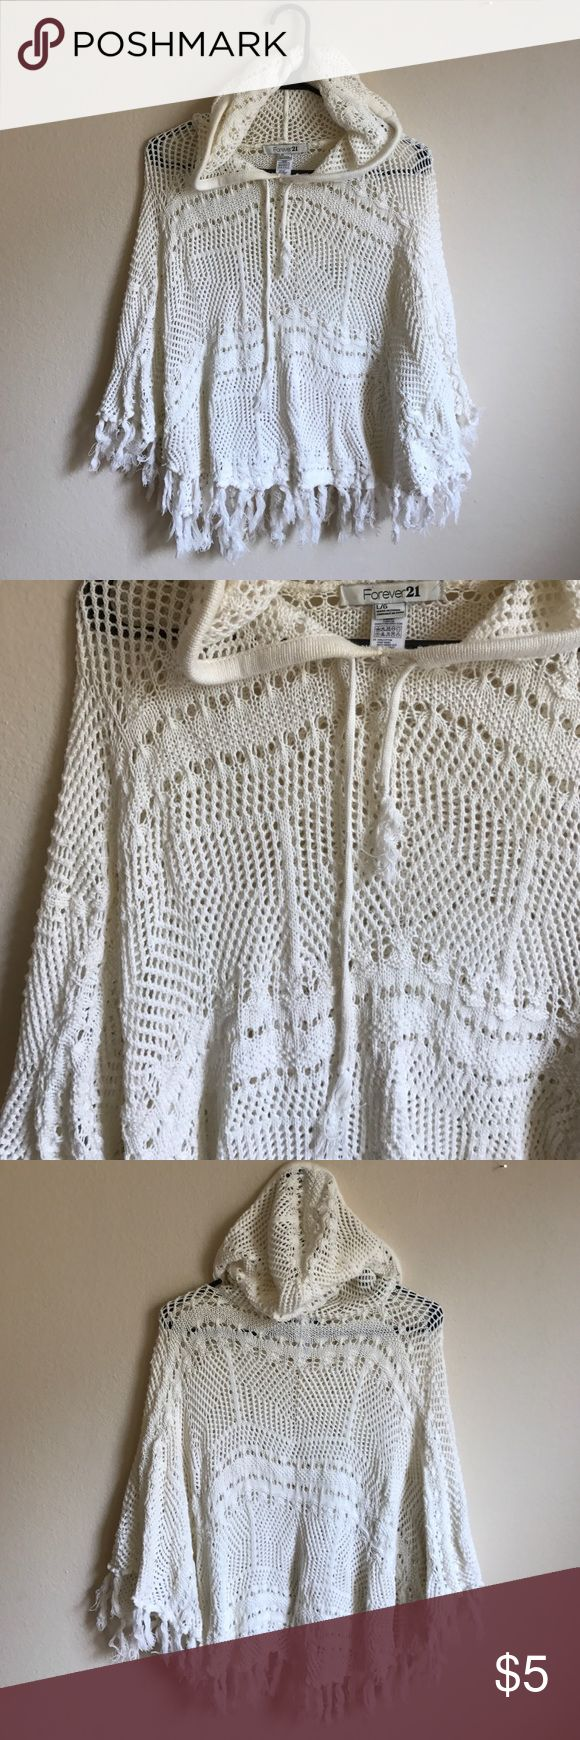 Crochet hooded poncho Worn, loved, and taken care of!! Crochet poncho with a hood!! 😍😍😍 great as a cover up or just with shorts. Forever 21 size L. Fringed detail along hem. Forever 21 Sweaters Shrugs & Ponchos